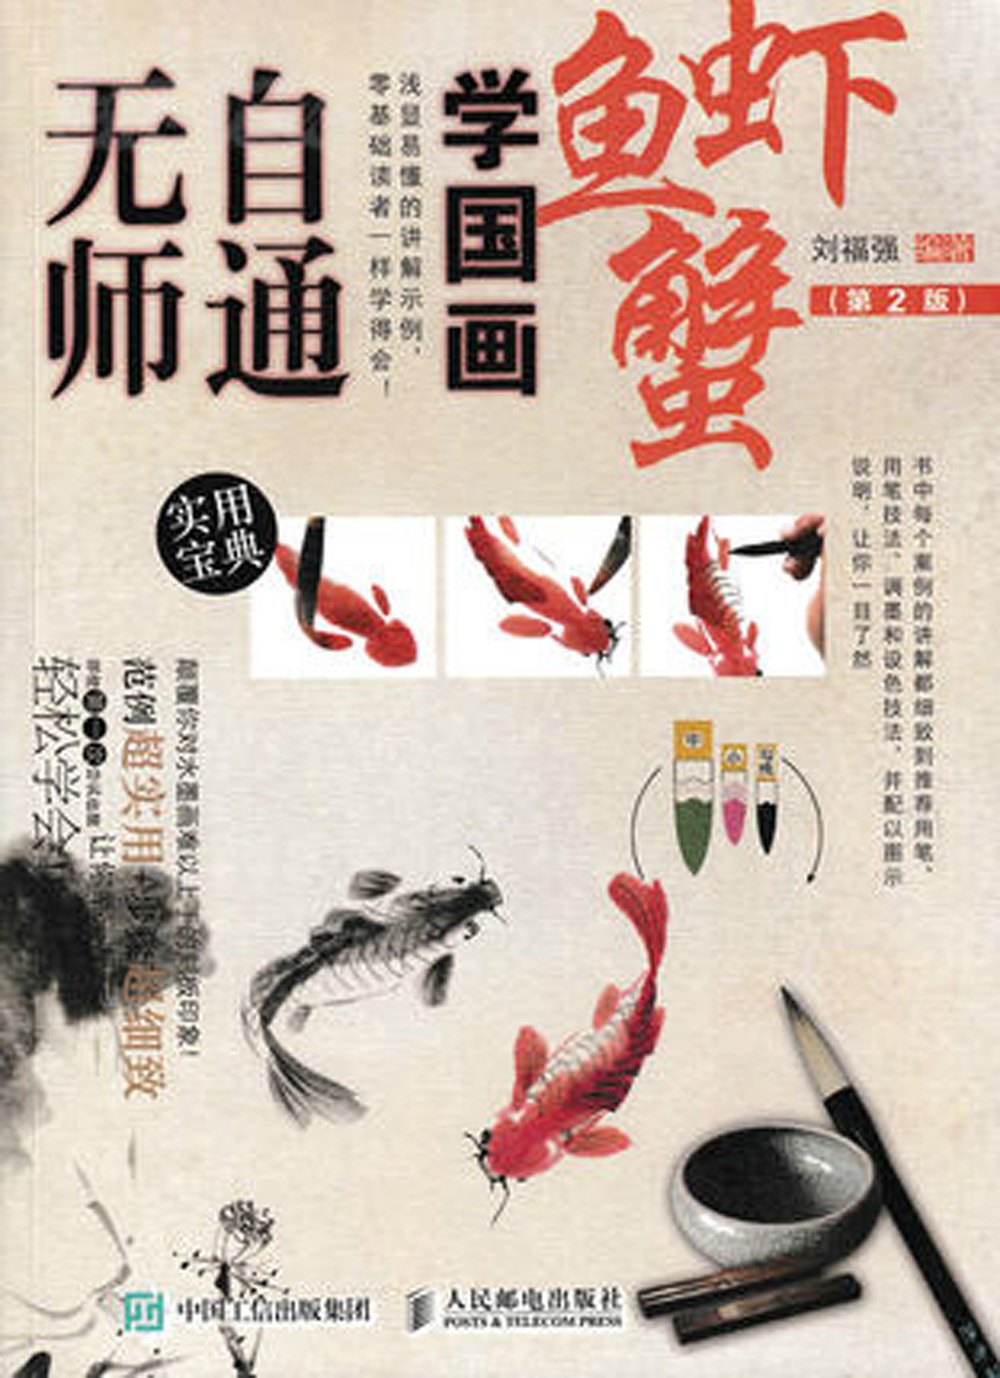 Chinese Brush Ink Art Painting Sumi-e Self-Study Technique Draw Fish and shrimp Book (Chinese Edition) chinese brush ink art painting sumi e self study technique draw orchid book very useful book to chinese painting